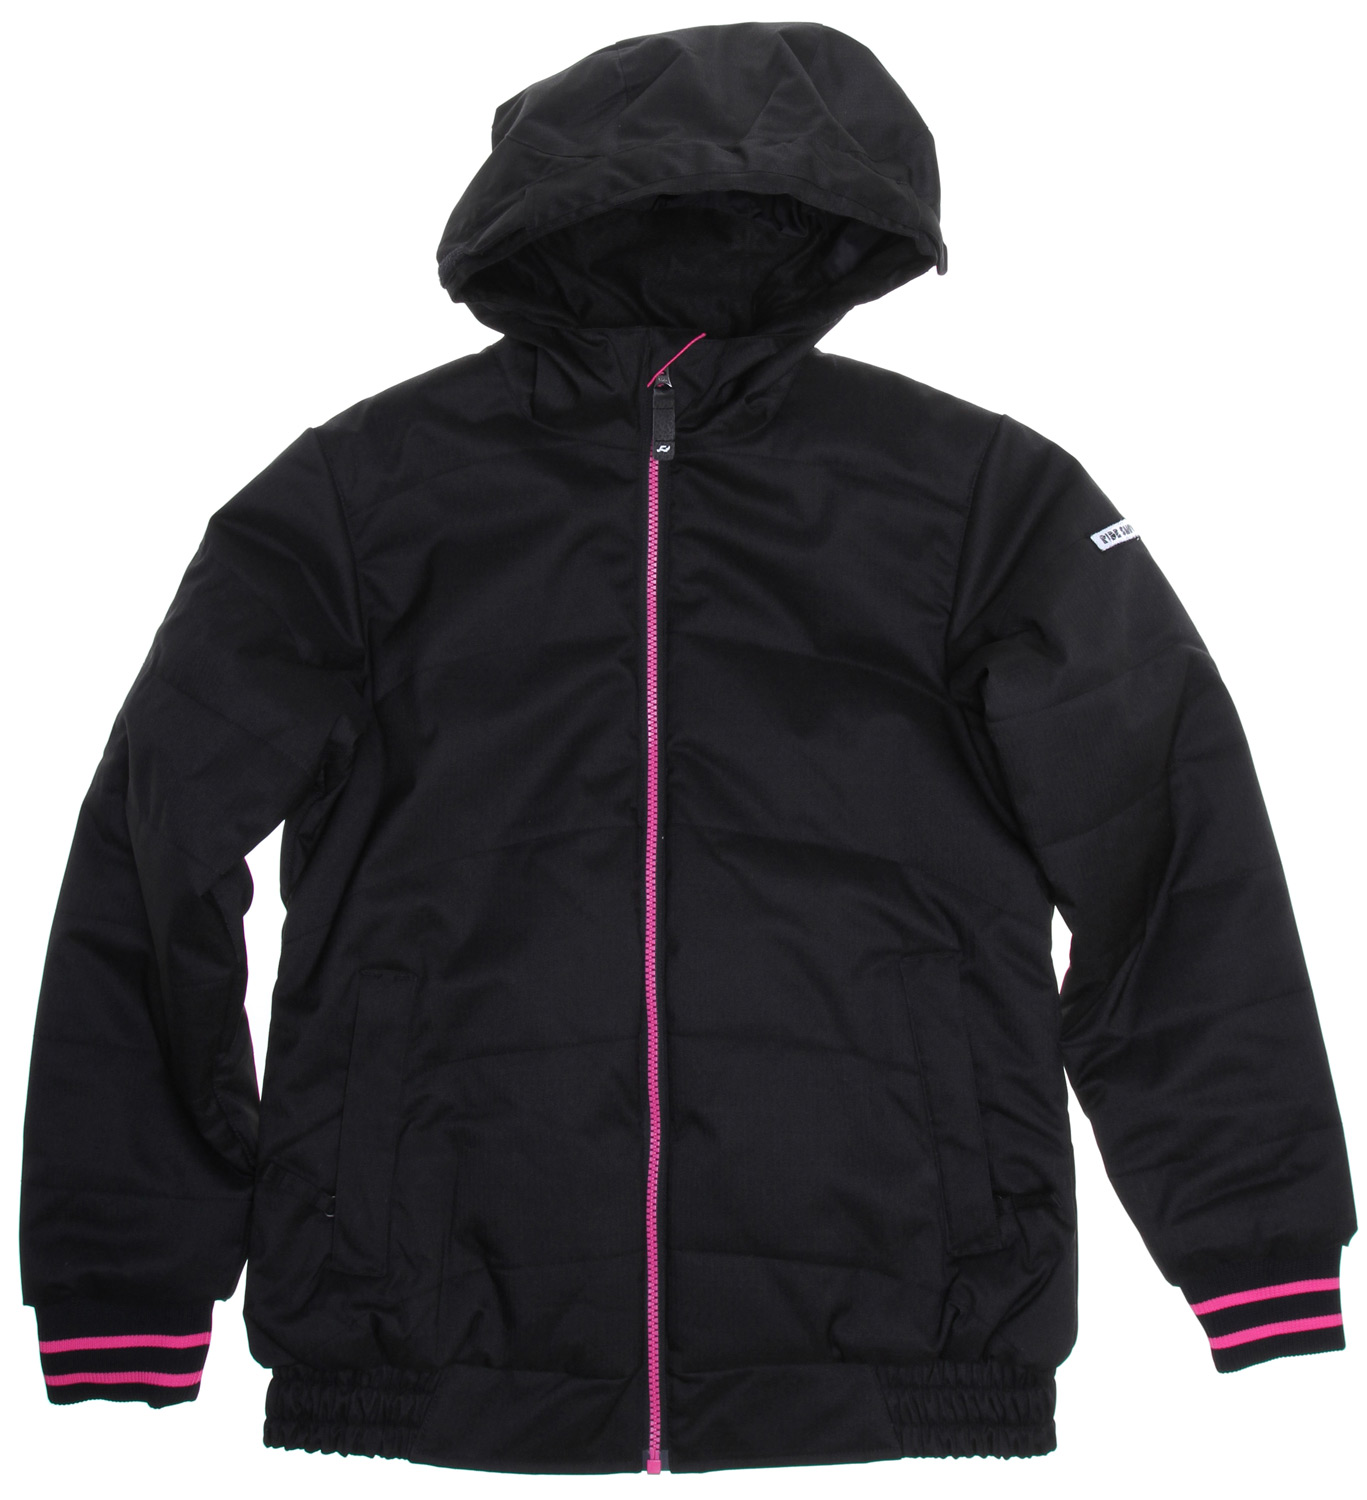 "Snowboard The Ride Shelby girls insulated snowboard jacket offers premium warmth and protection for your up-and-comer with a 200g Poly Insulation and 5k/5k waterproof breathable rating, keeping her out on the slopes instead of breaking down in the lodge.Key Features of the Ride Shelby Snowboard Jacket: 5,000mm Waterproof 5,000g Breathability 200g Poly Insulated girls snowboard jacket with Tricot Lining Growth Seams at the Sleeve Hem That Extend out 1 1/2"" in Length Velvety Comfort Chin Guard and Inner Collar Adjustable Ribbed Knit Cuffs Attached Hood Adjustable Elastic Hood Adjustments Inside Media Pocket Lift Ticket Self-Fabric Loop Front Micro-Fleece Lined Toaster Pockets Elastic Bottom Hem Side Panels - $83.95"